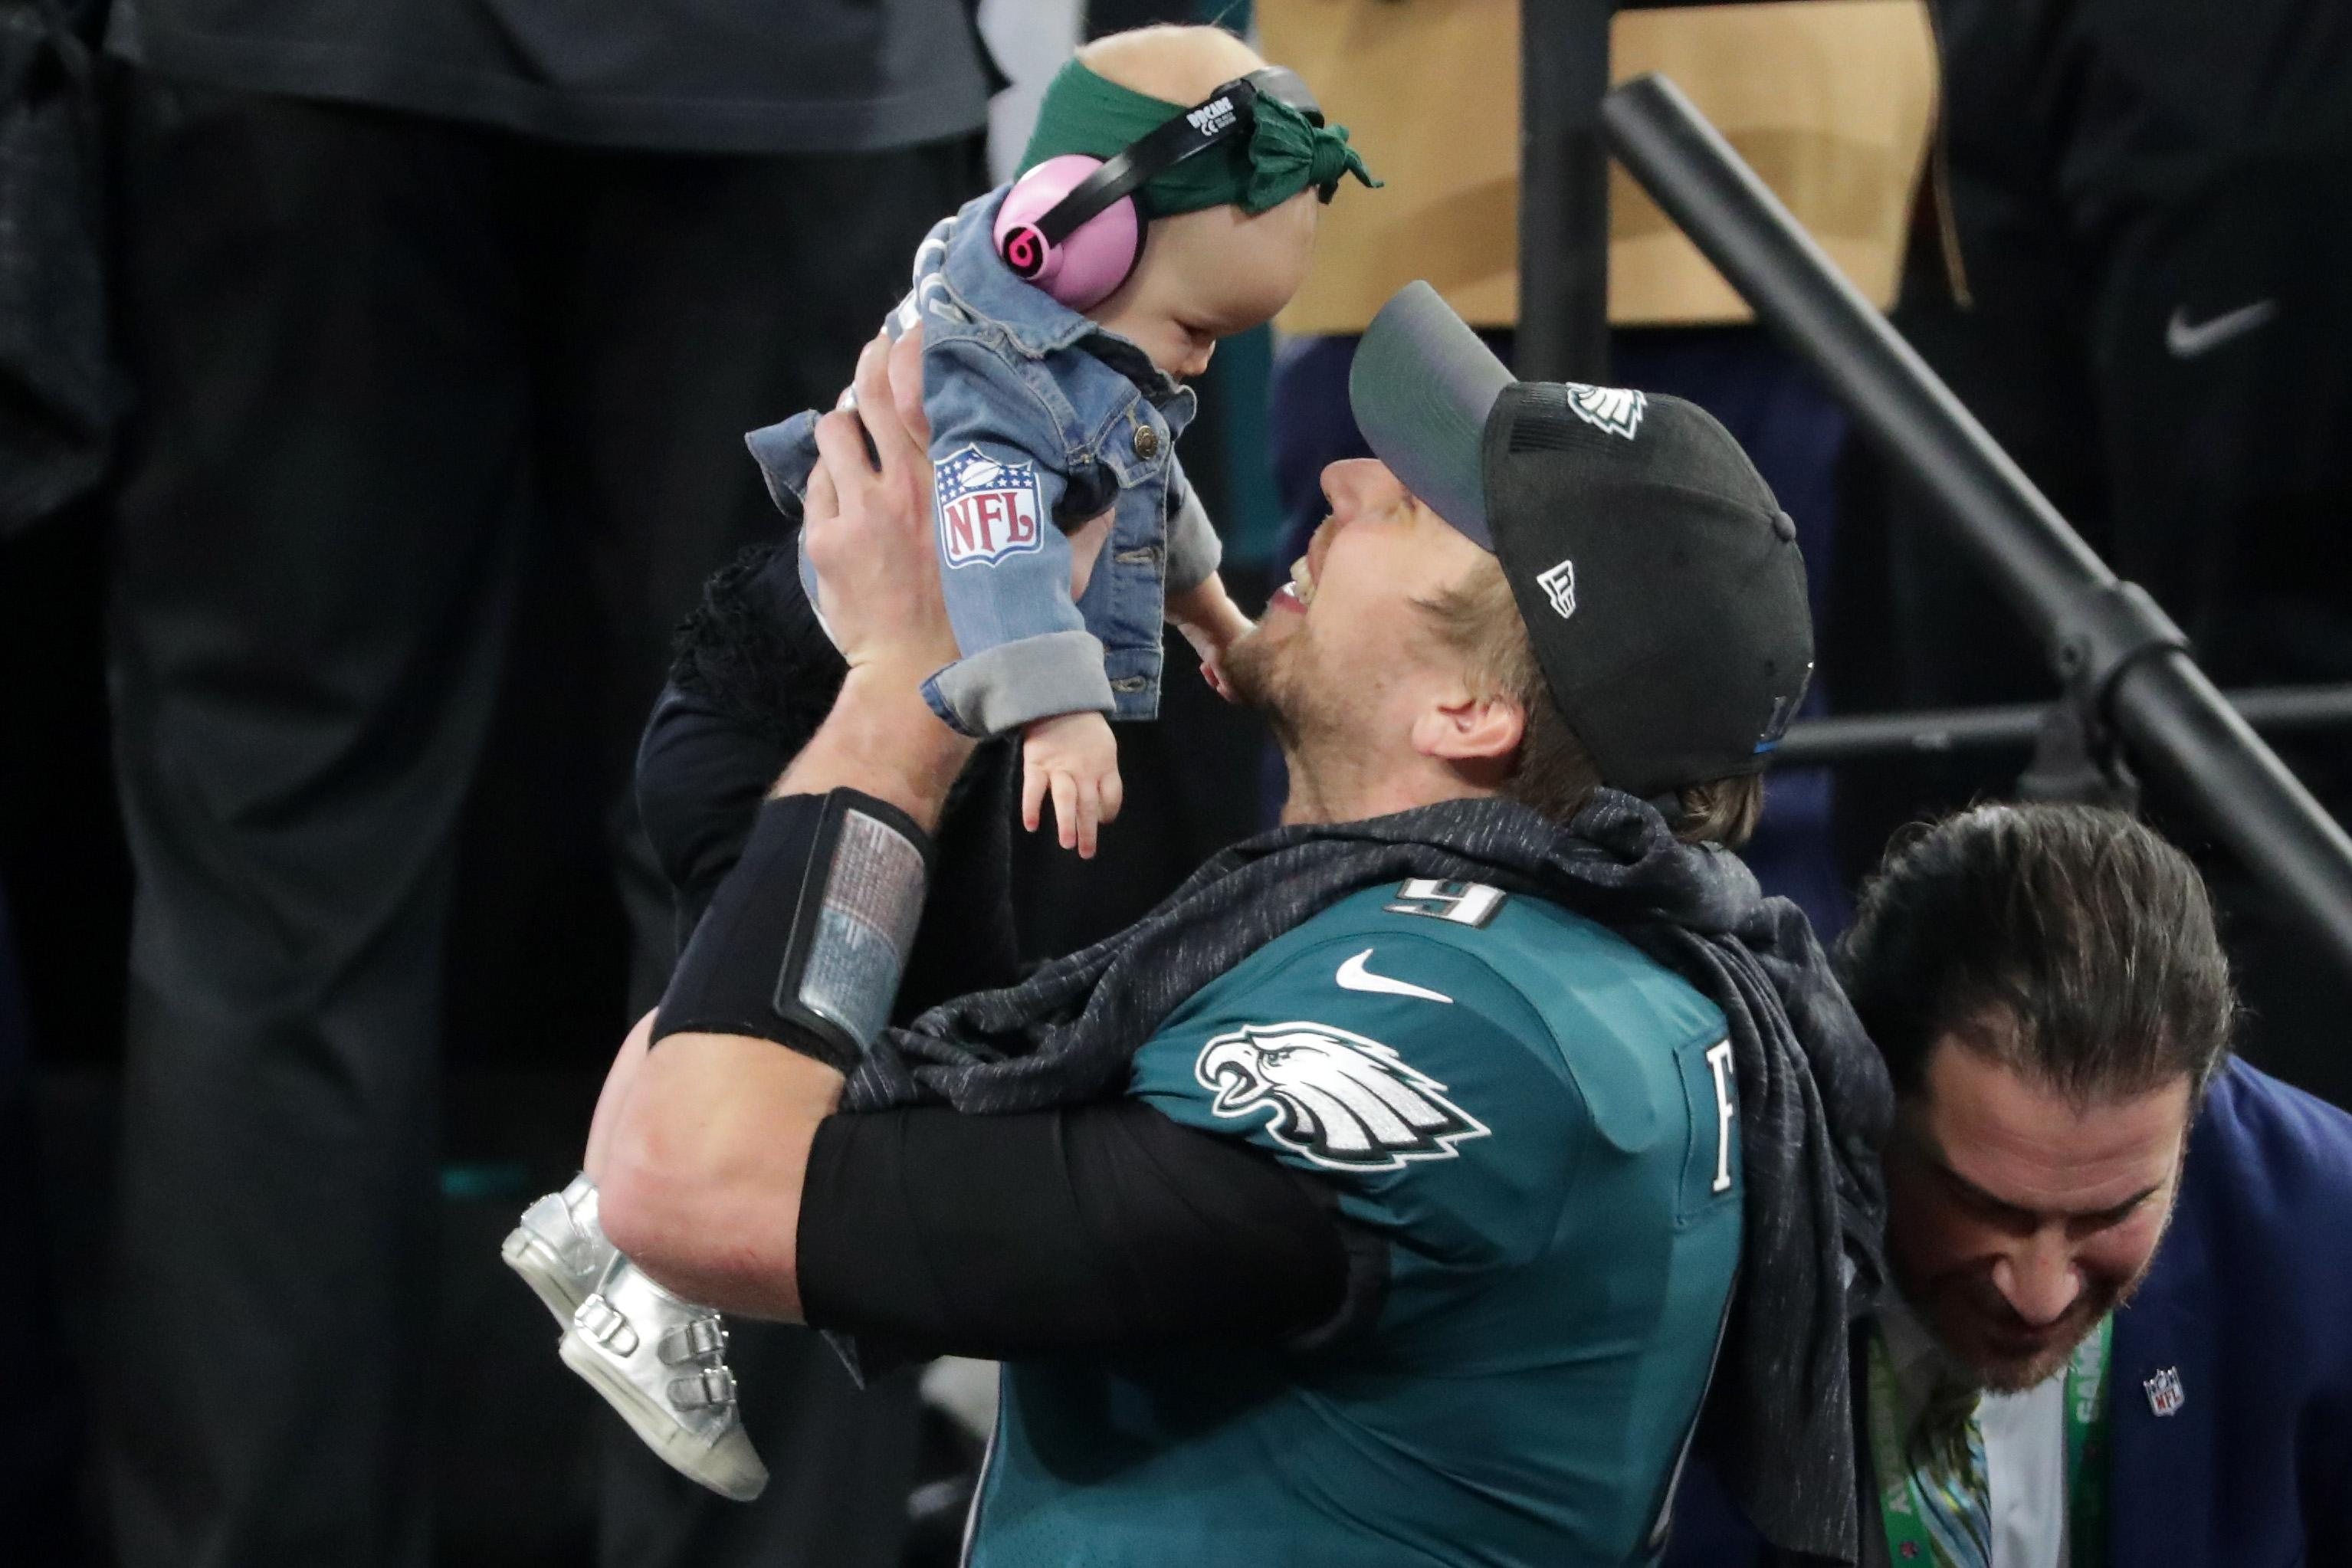 MINNEAPOLIS, MN - FEBRUARY 04:  Nick Foles #9 of the Philadelphia Eagles celebrates with his daughter Lily Foles after his 41-33 victory over the New England Patriots in Super Bowl LII at U.S. Bank Stadium on February 4, 2018 in Minneapolis, Minnesota. The Philadelphia Eagles defeated the New England Patriots 41-33.  (Photo by Streeter Lecka/Getty Images)